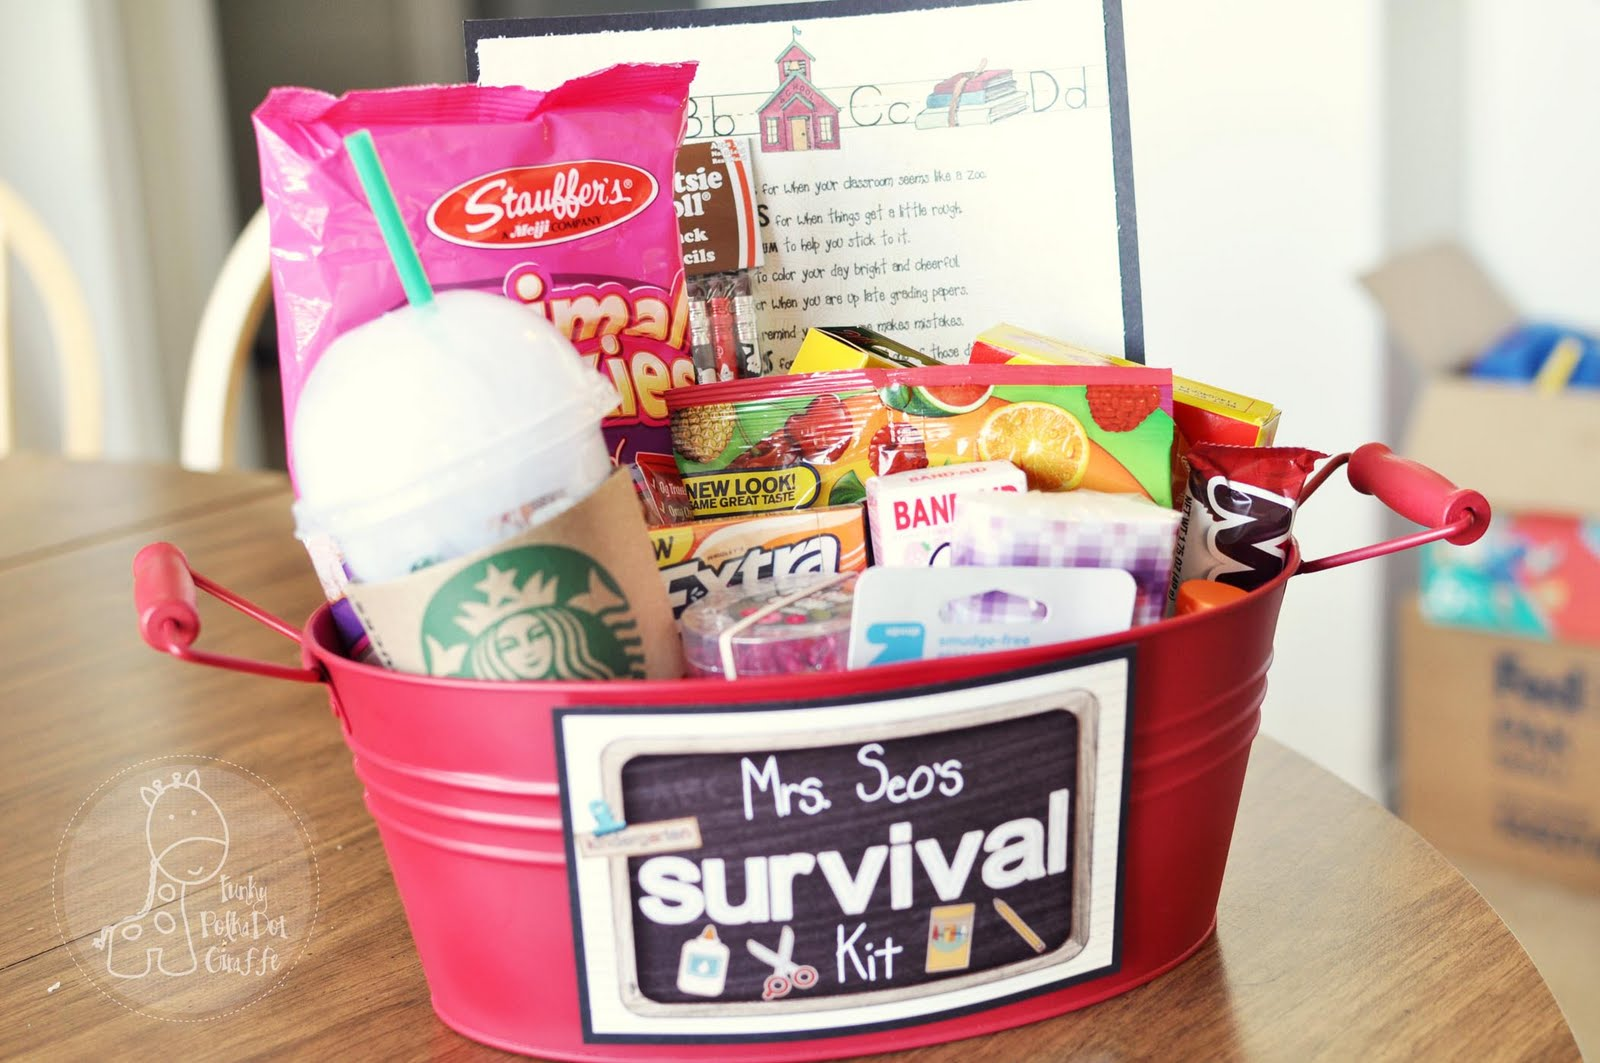 Pics photos funny college survival kit ideas - I Saw The Idea On Pinterest And Had Done A Similar Thing For My Students On The First Day Of School